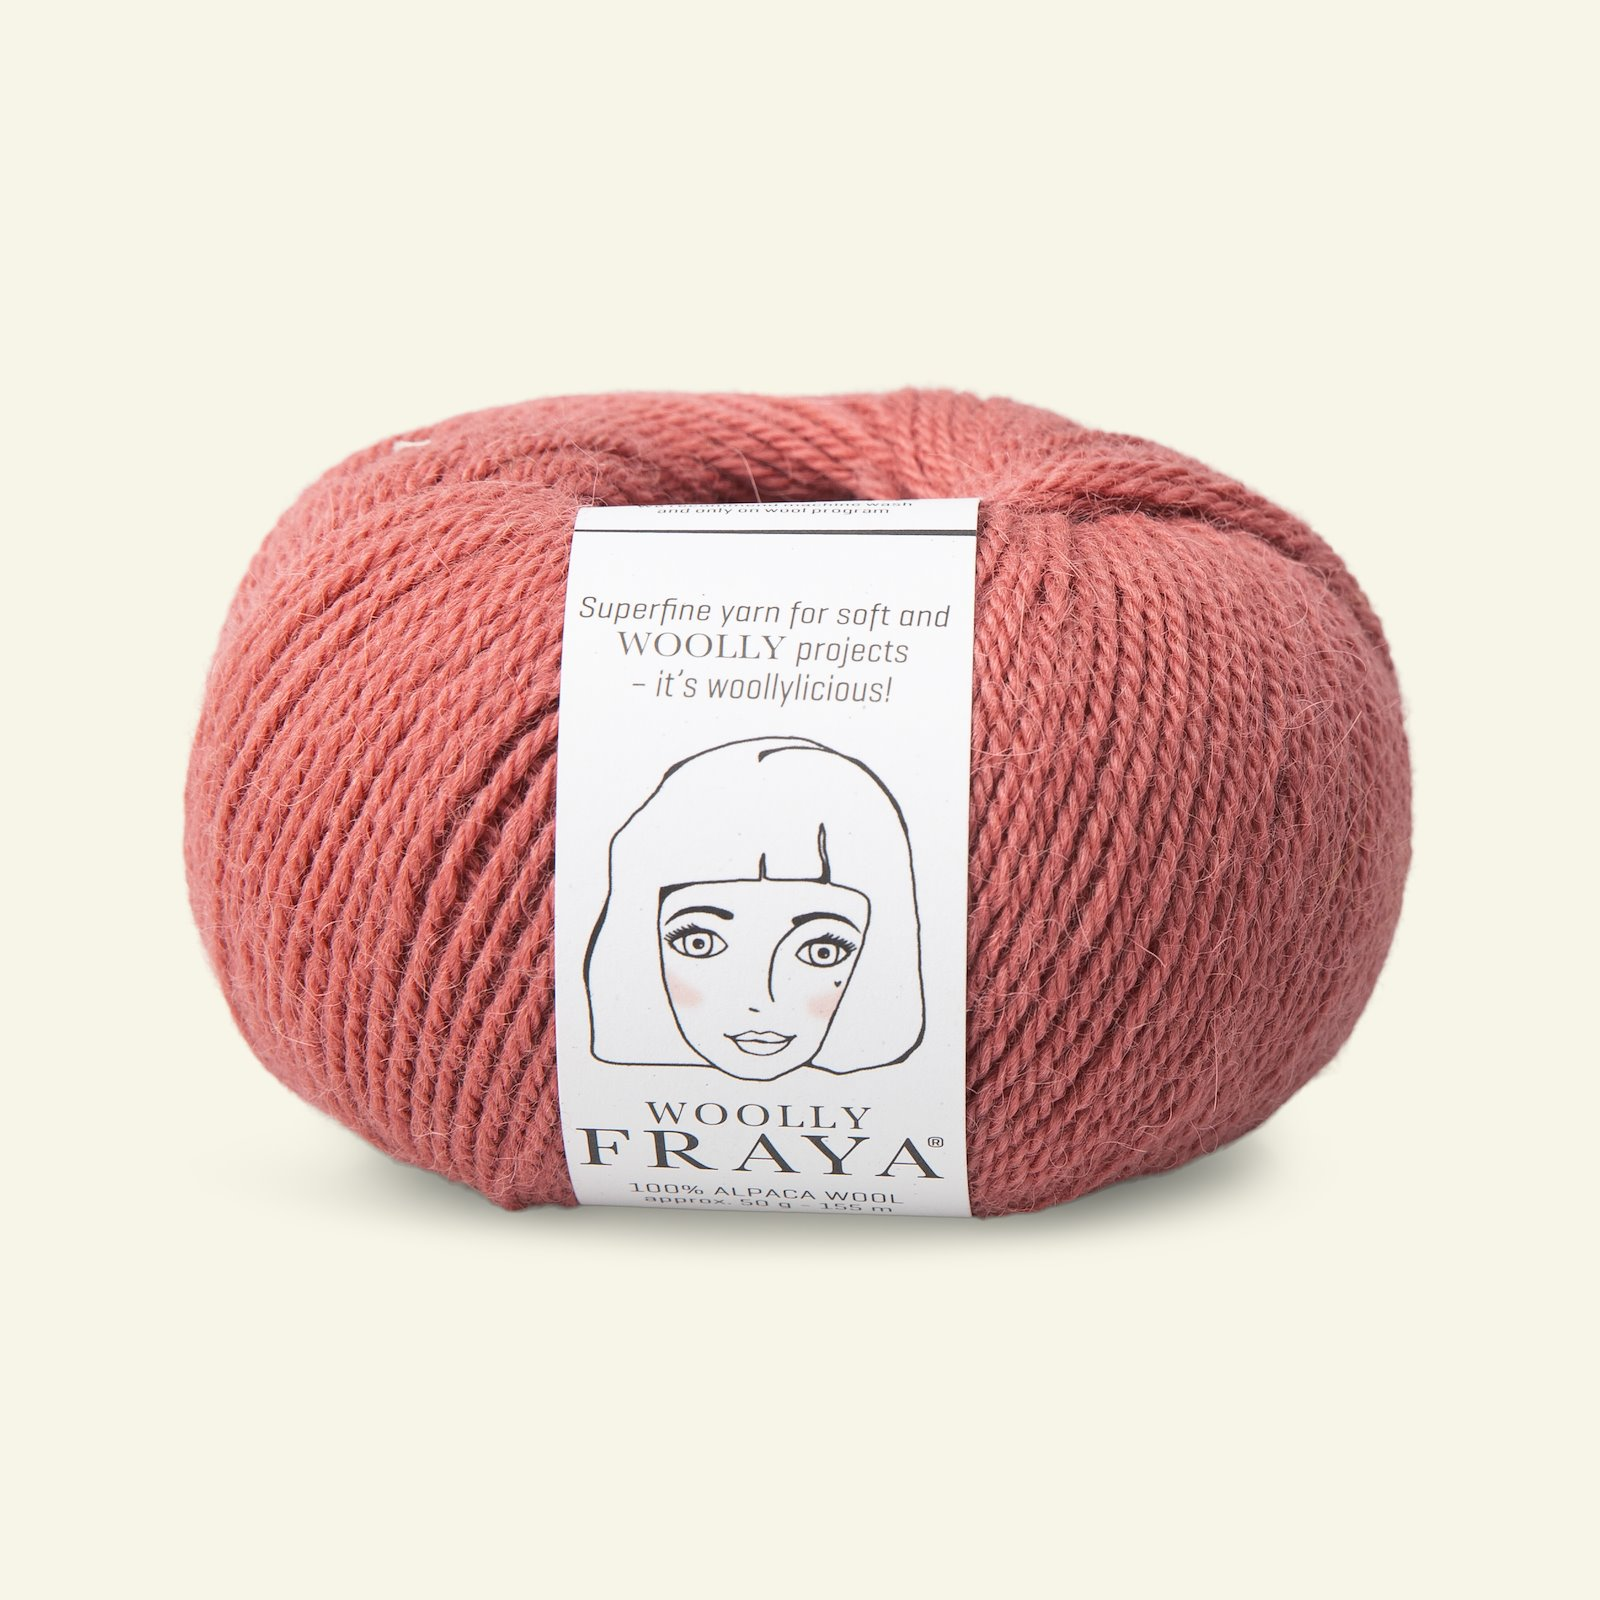 Woolly 50g dusty rose 90000067_pack